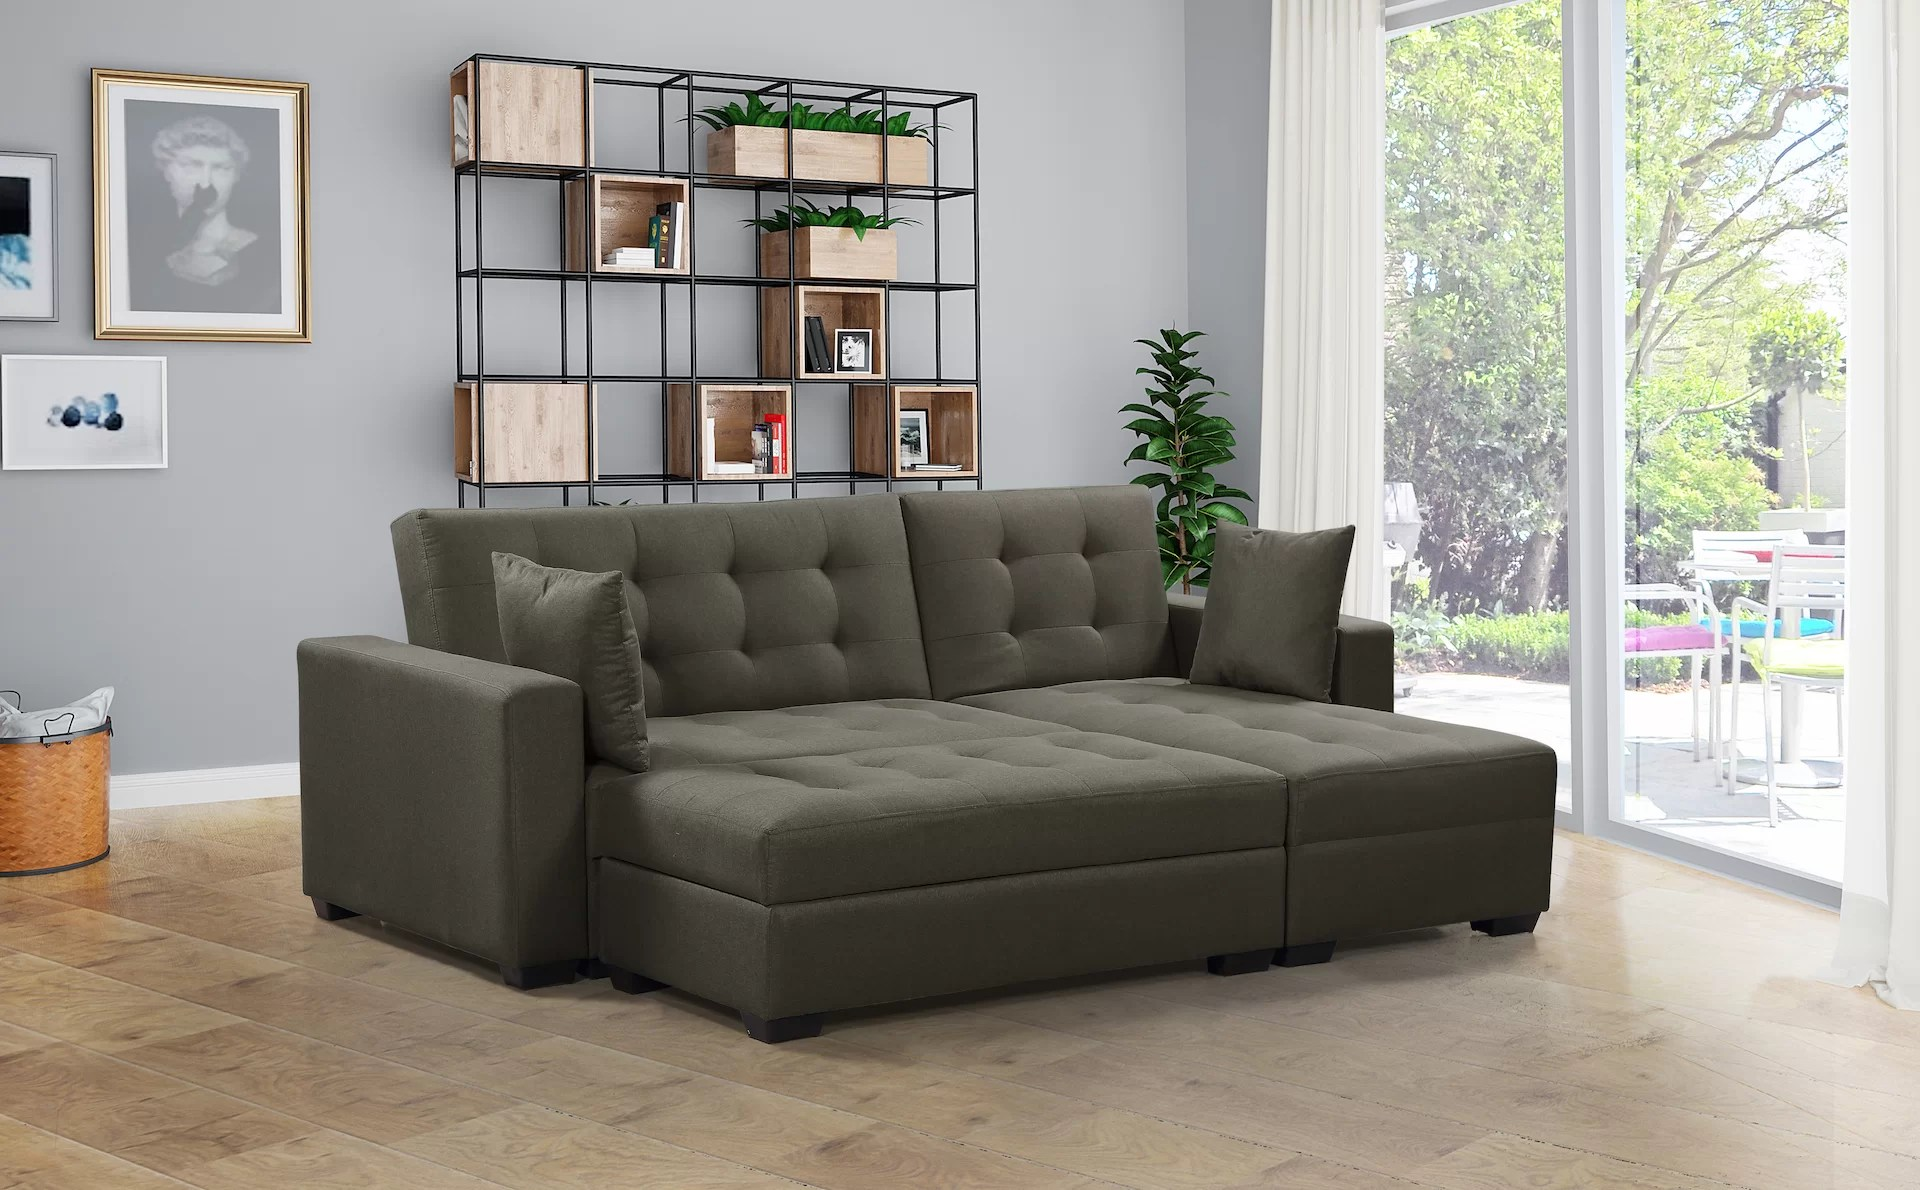 Sofa Foam Leeds Leeds Reversible Sleeper Sectional